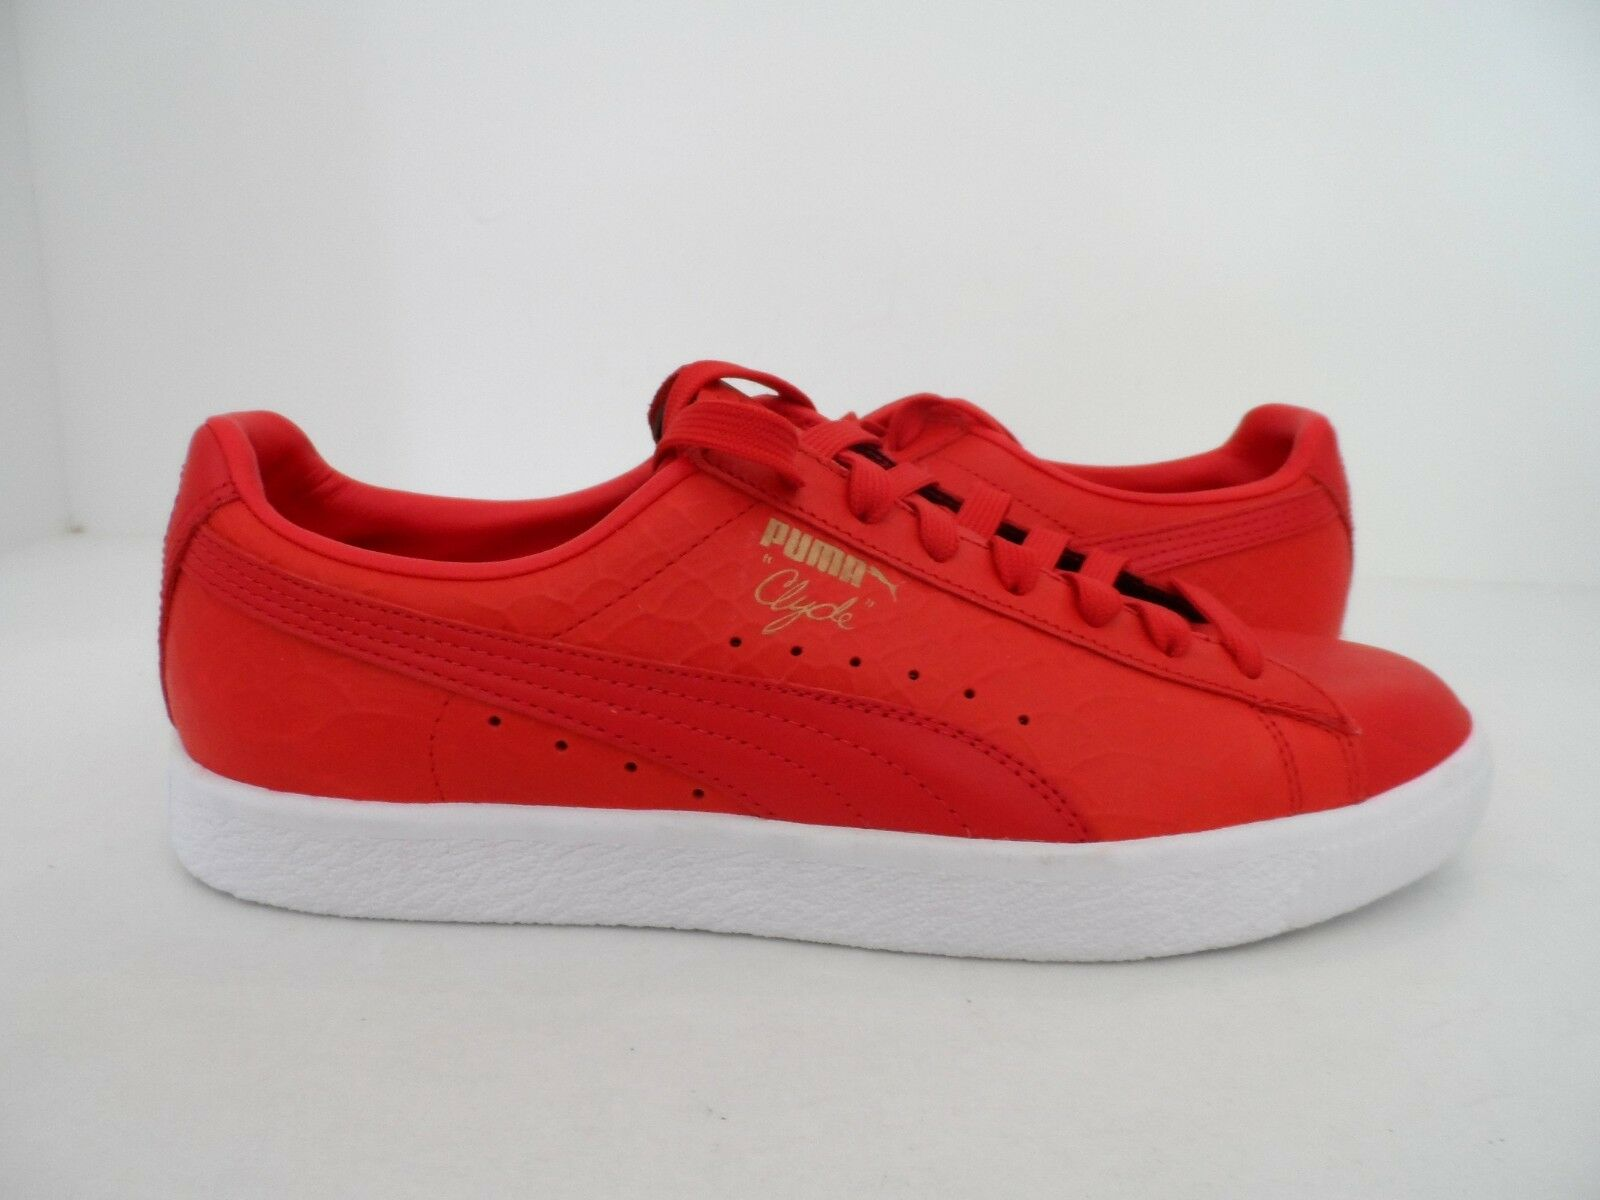 PUMA Mens Clyde Dresses Fashion Sneaker Red Size 9.5